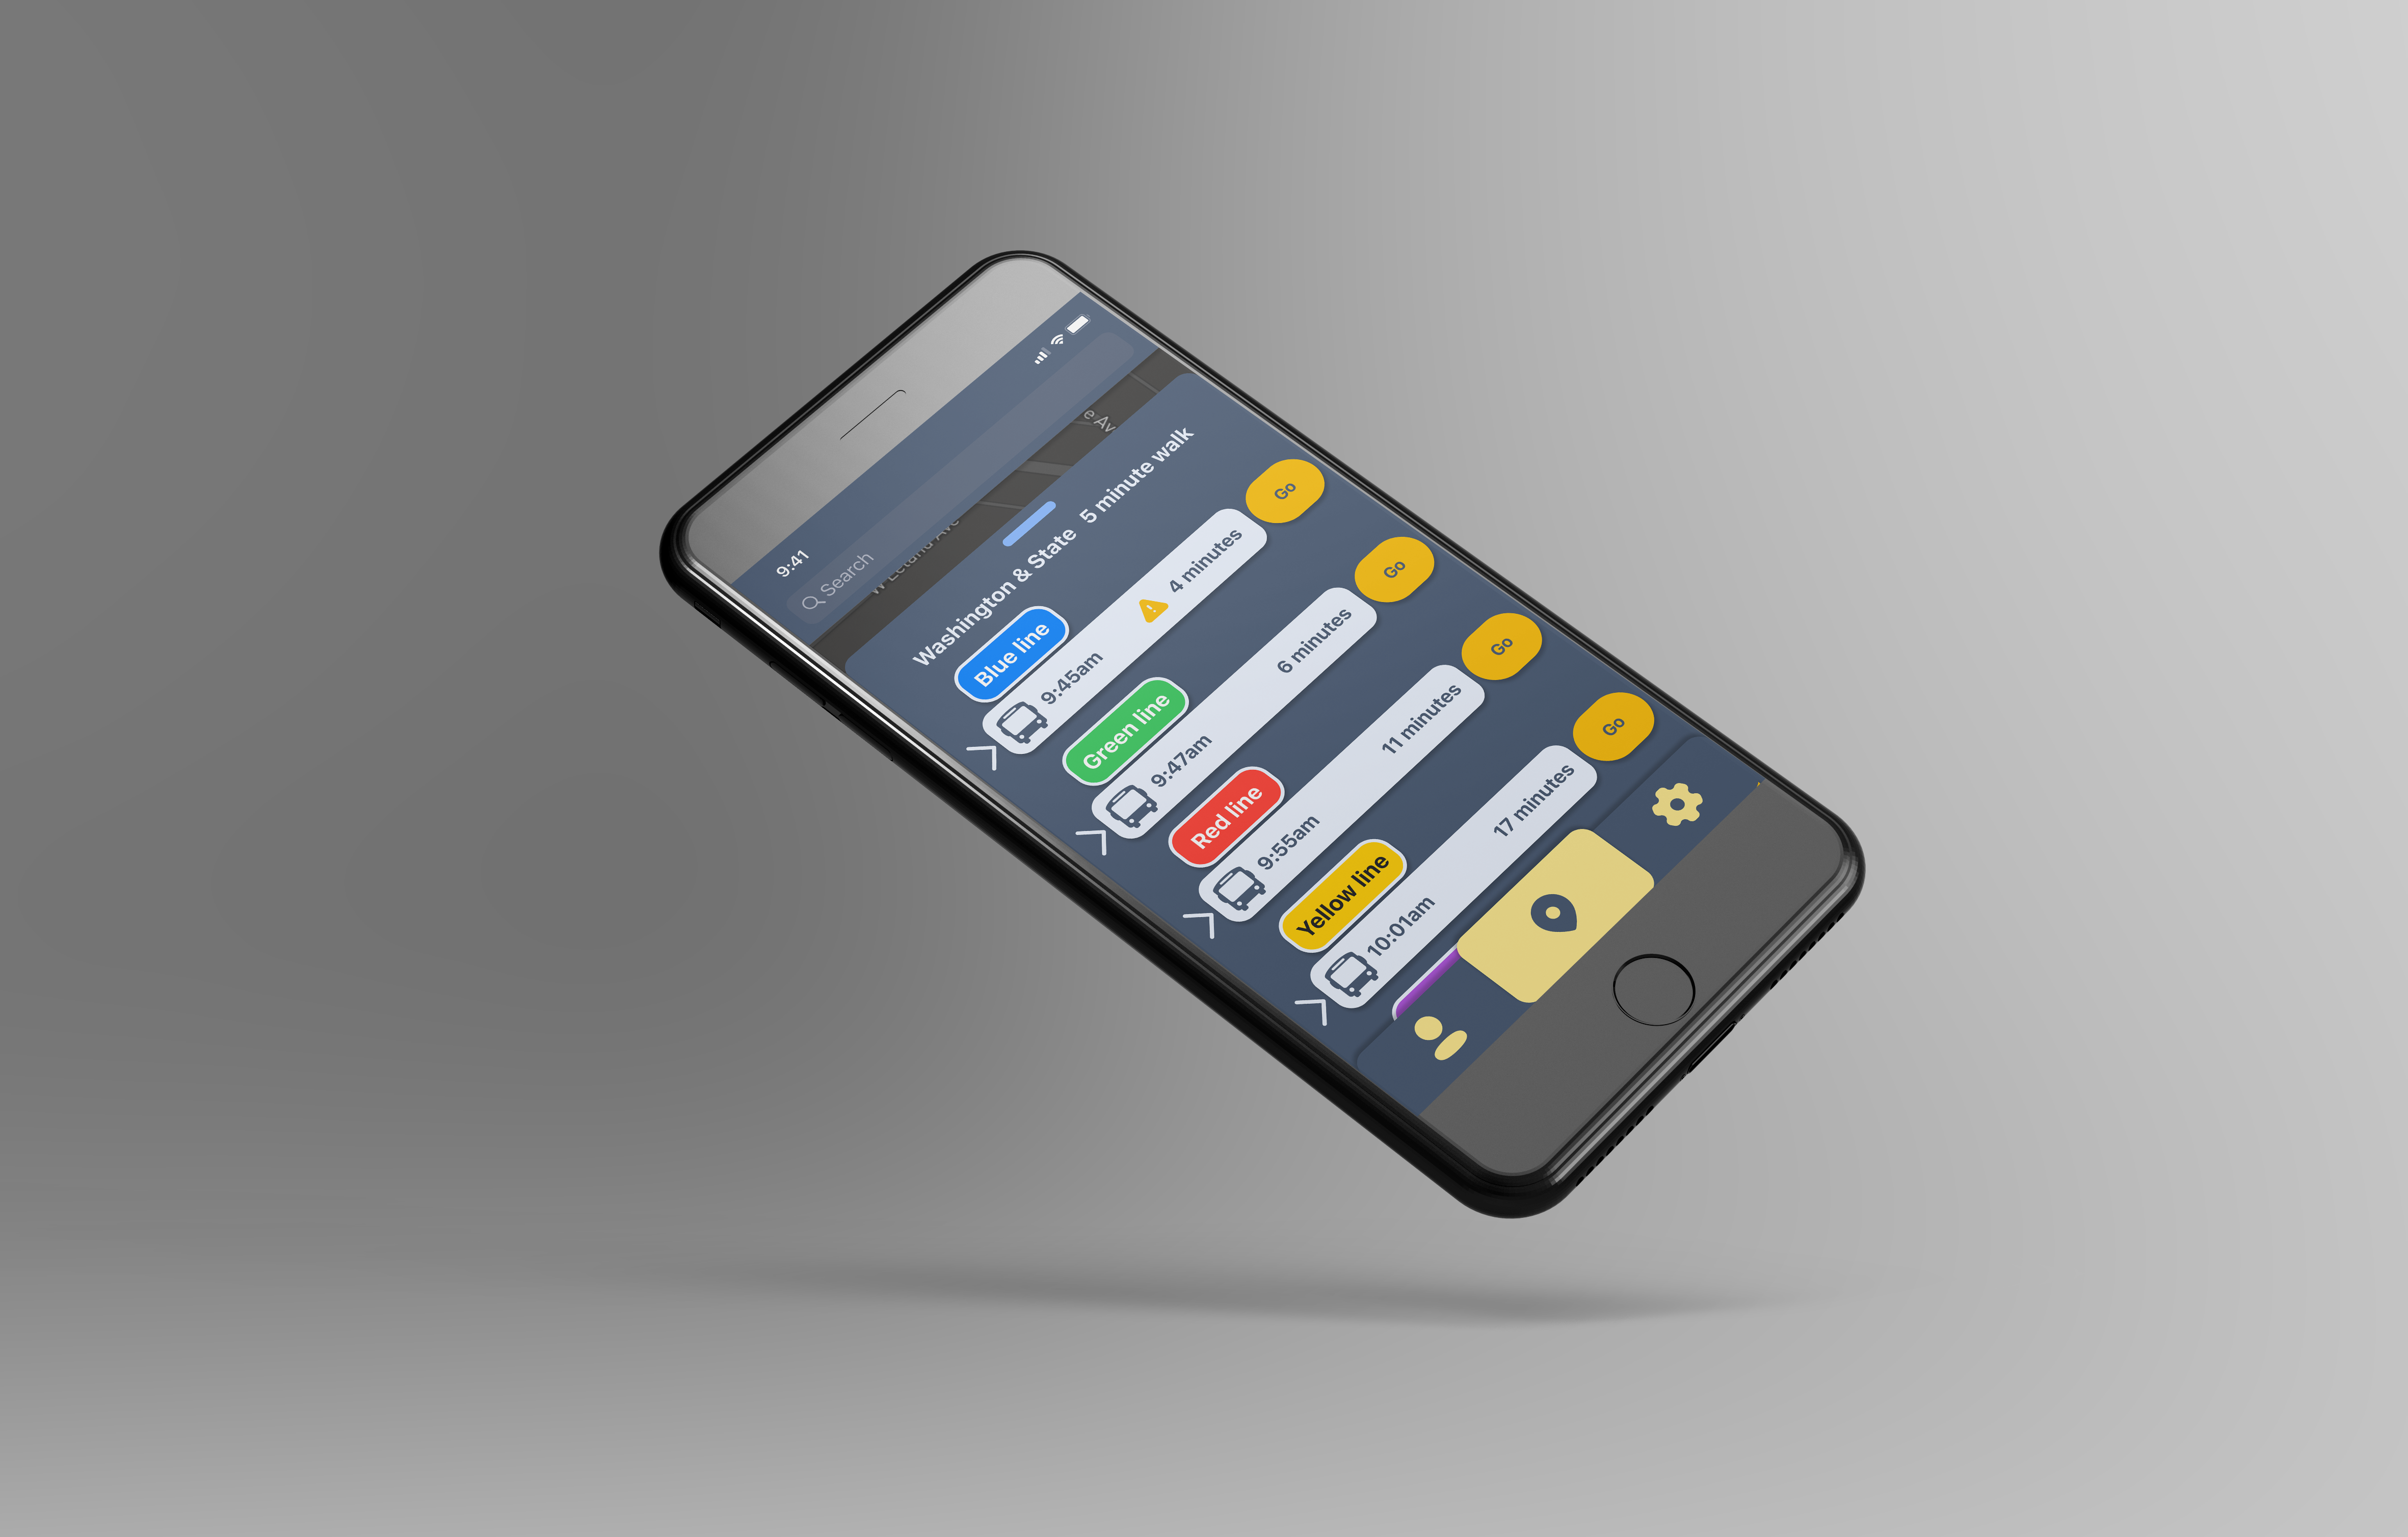 Image of a black iphone floating. It is displaying an app with a list of bus arrival times.